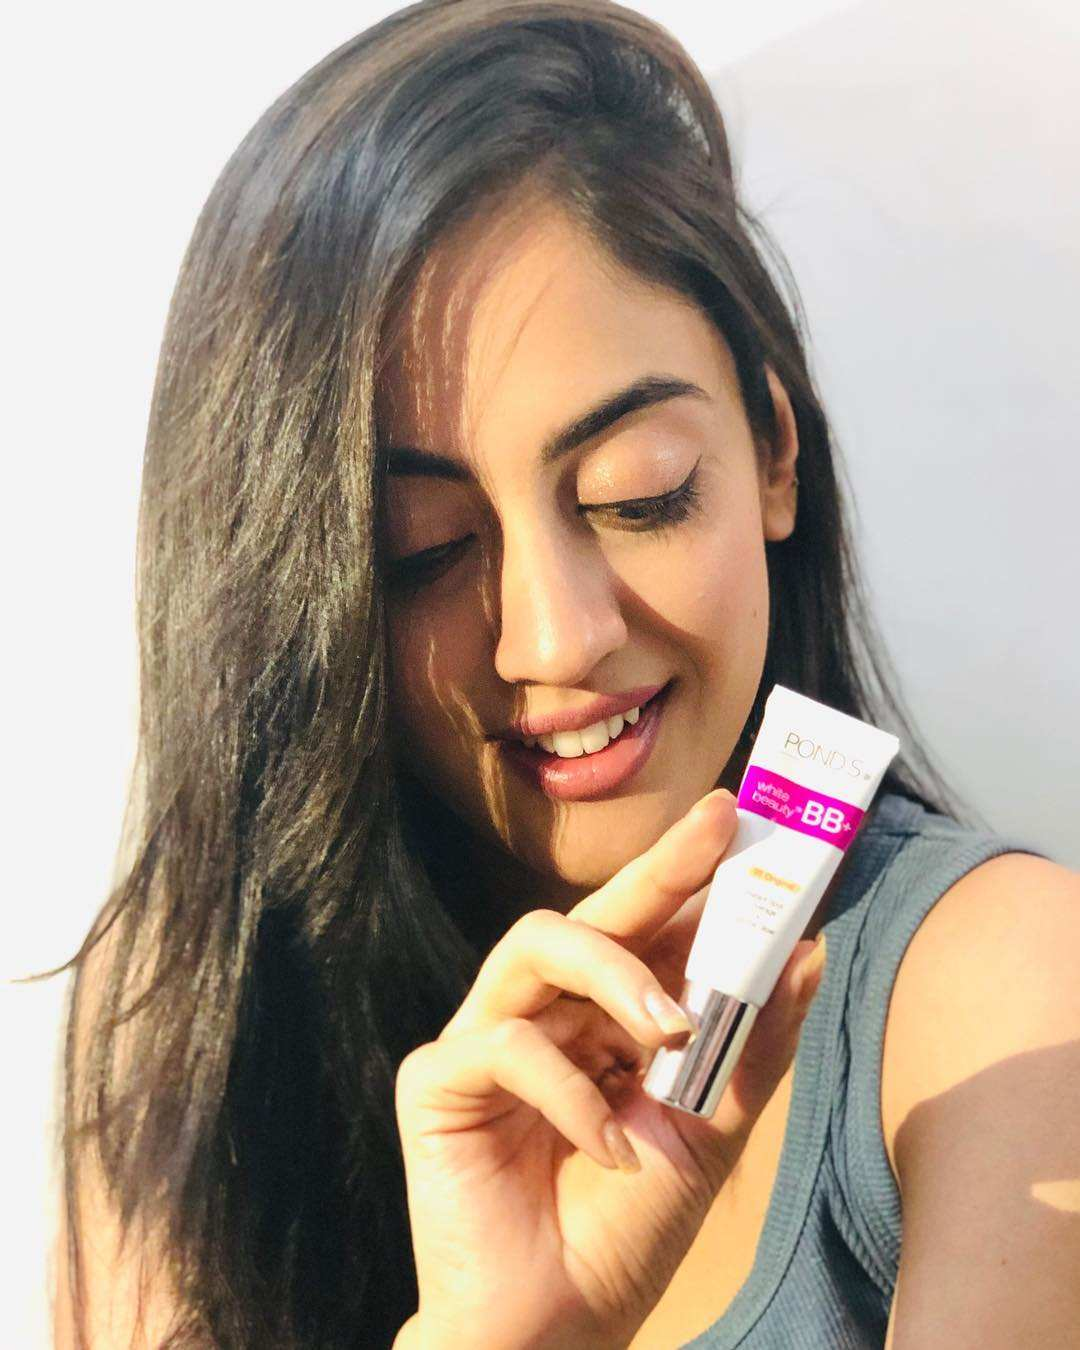 Aditi Sharma in Ponds White Beauty cream ads